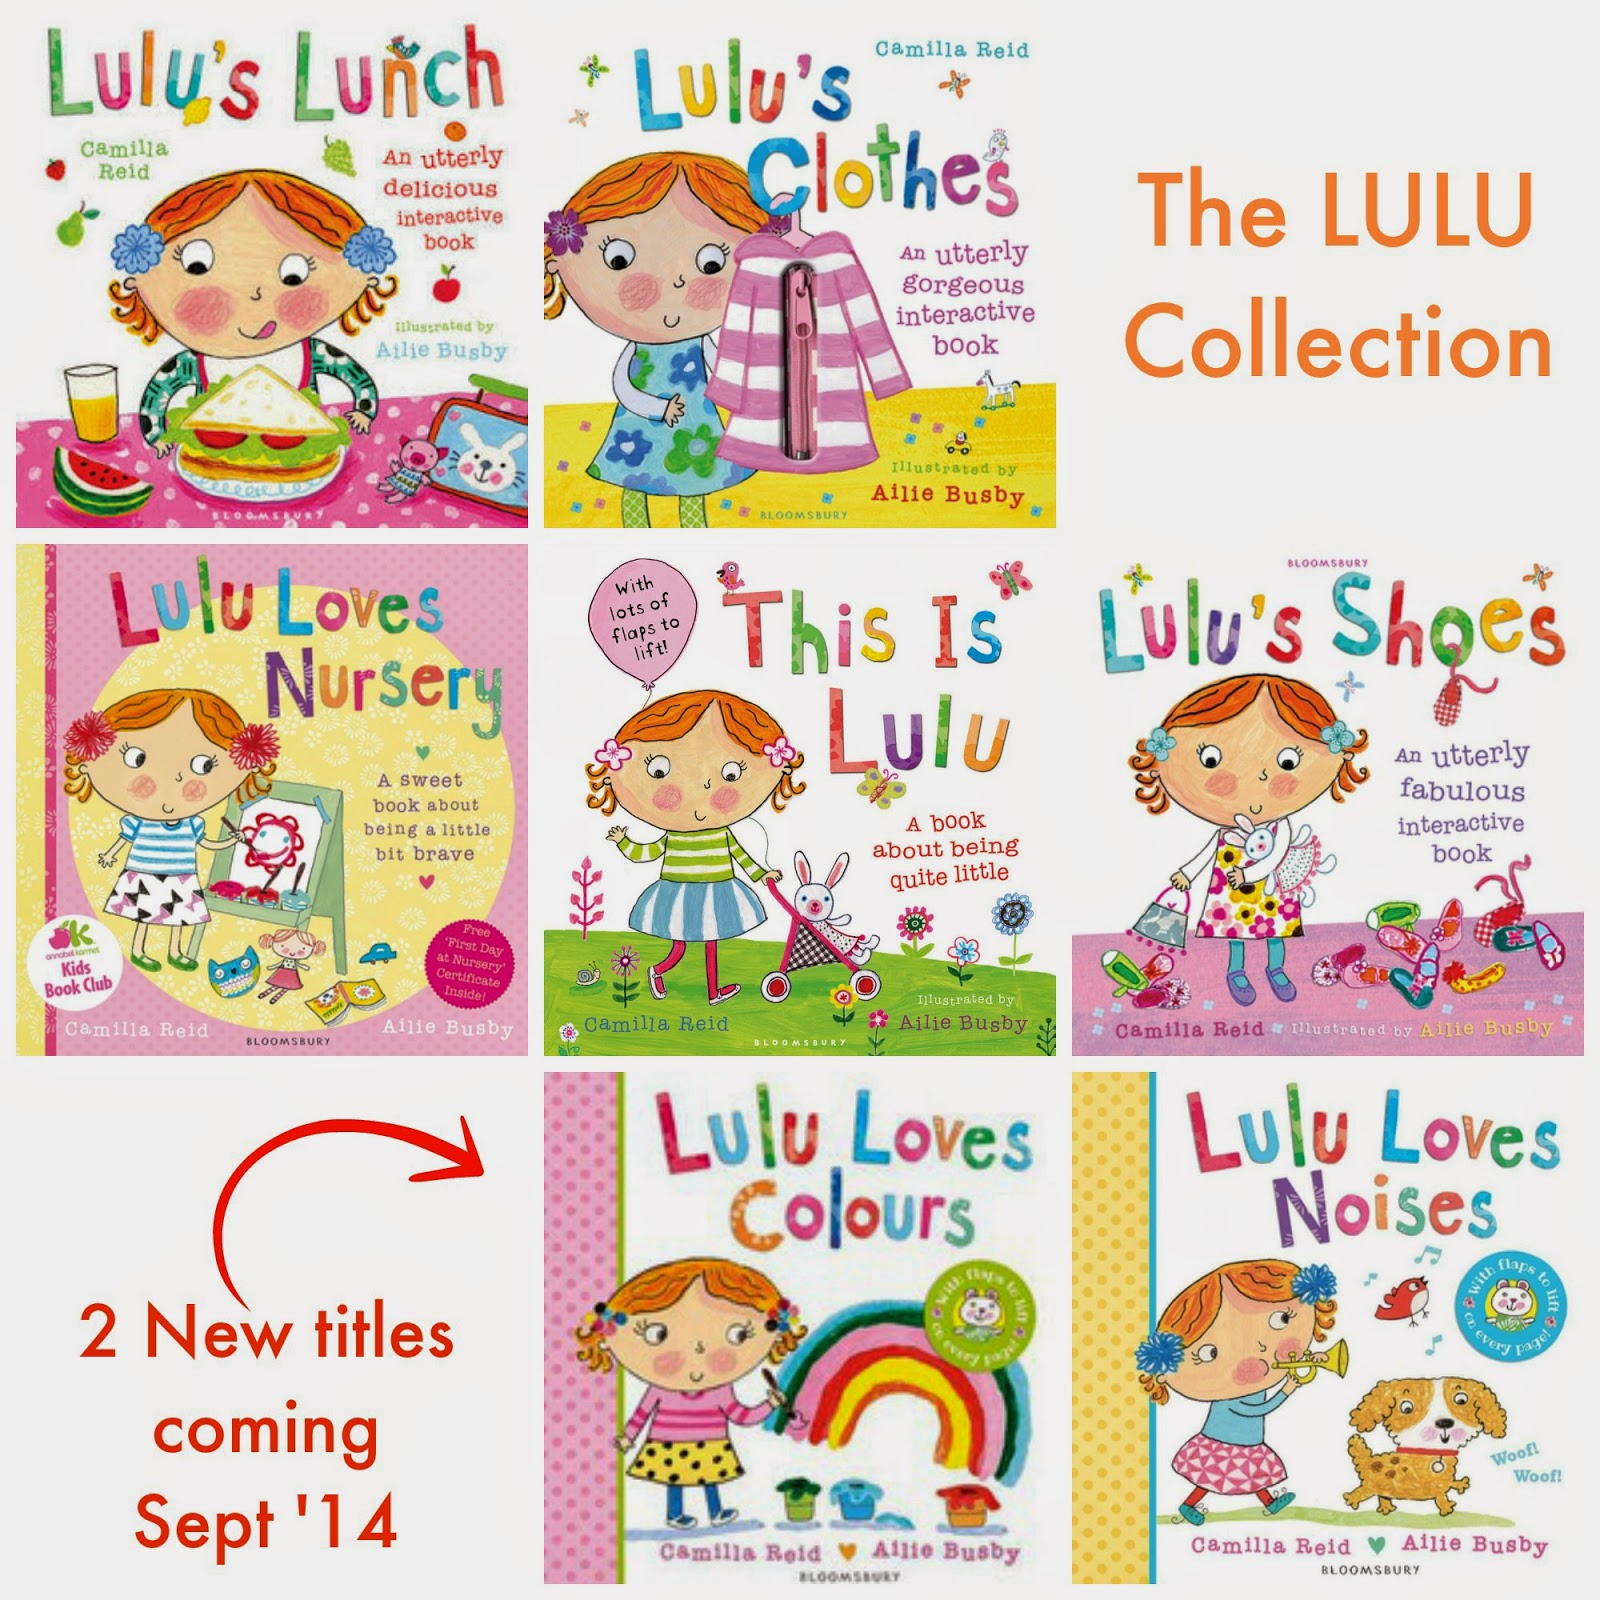 Have you and your little one met Lulu yet? | Lulu | Lulu Books | Camillia Reid | nosy Crow | campbell books | mamasVIb | Bloomsbury books | author | sunday night book club | books | nursery books | classic book for kids | potty training book | potty | books for potty training for toddlers | toddlers | books | mamas Vib